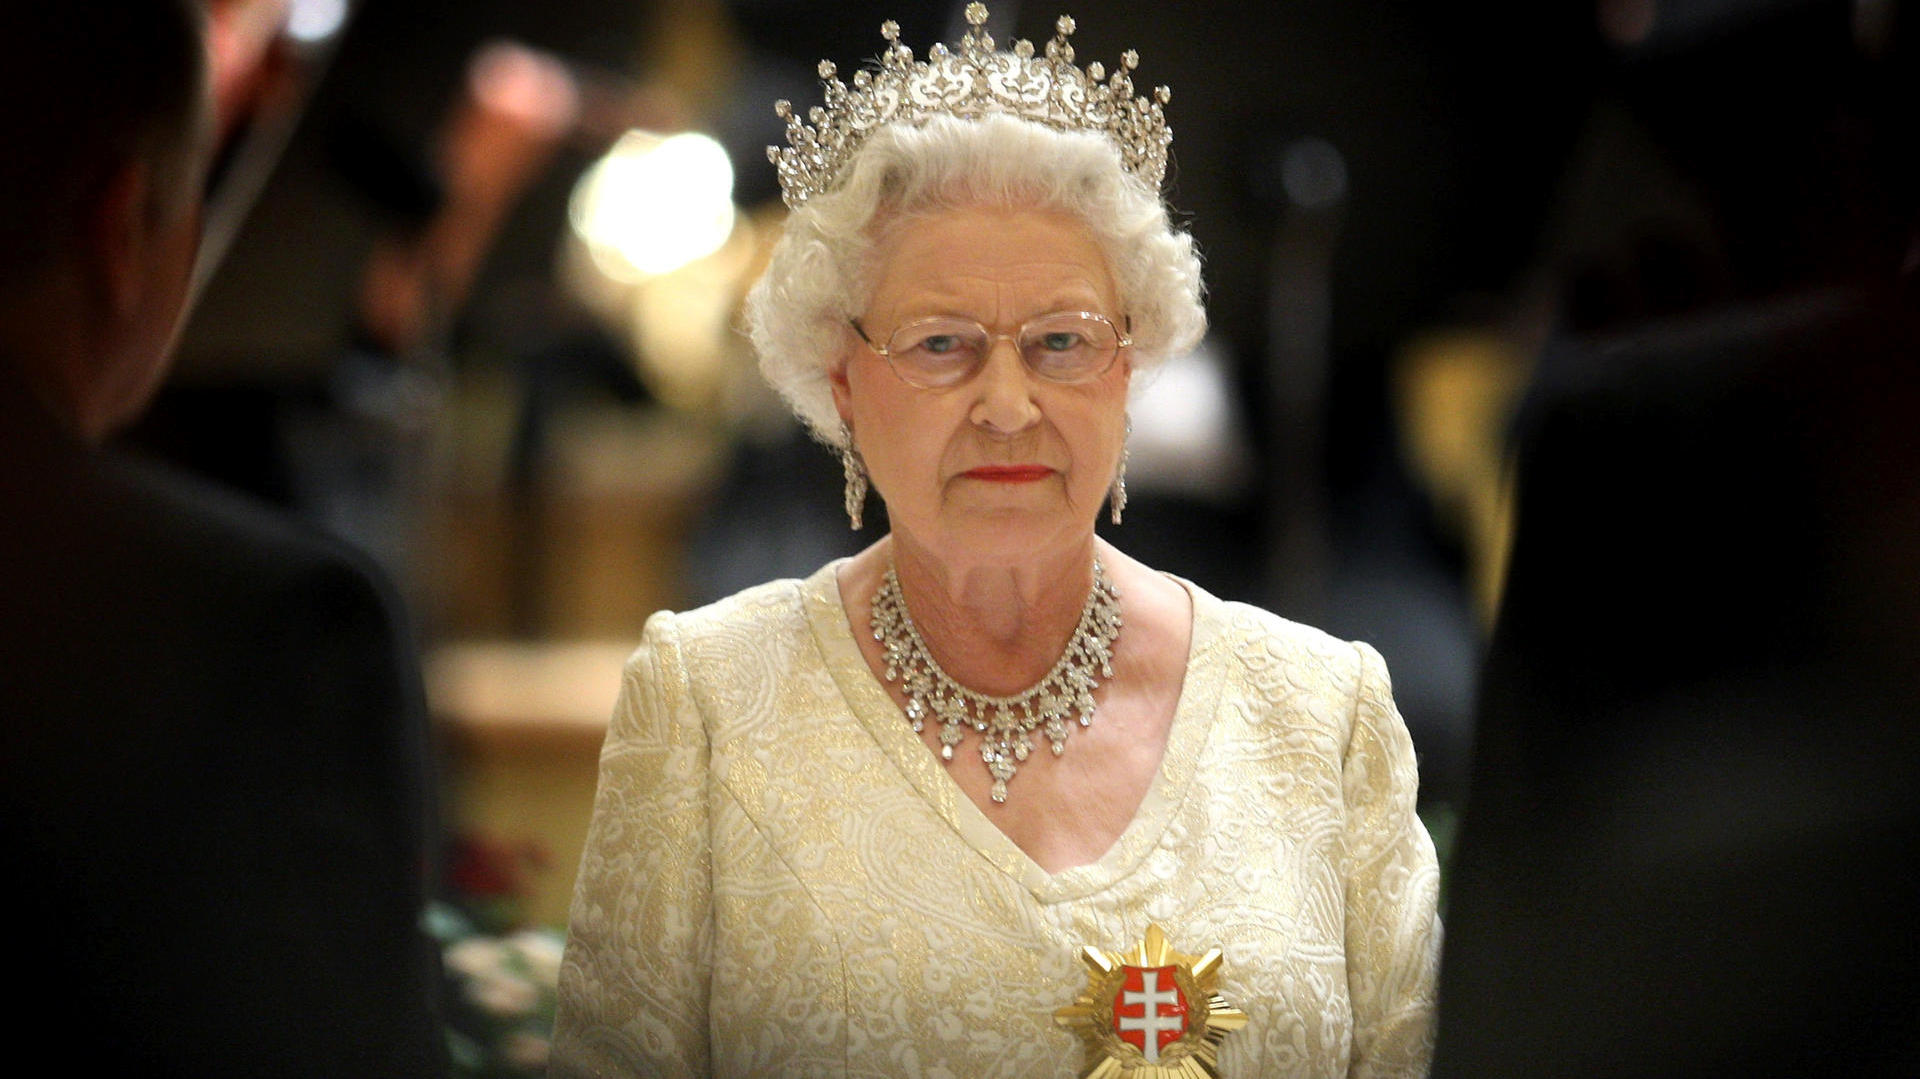 British government launches inquiry into leak of plans for procedures after queen's death